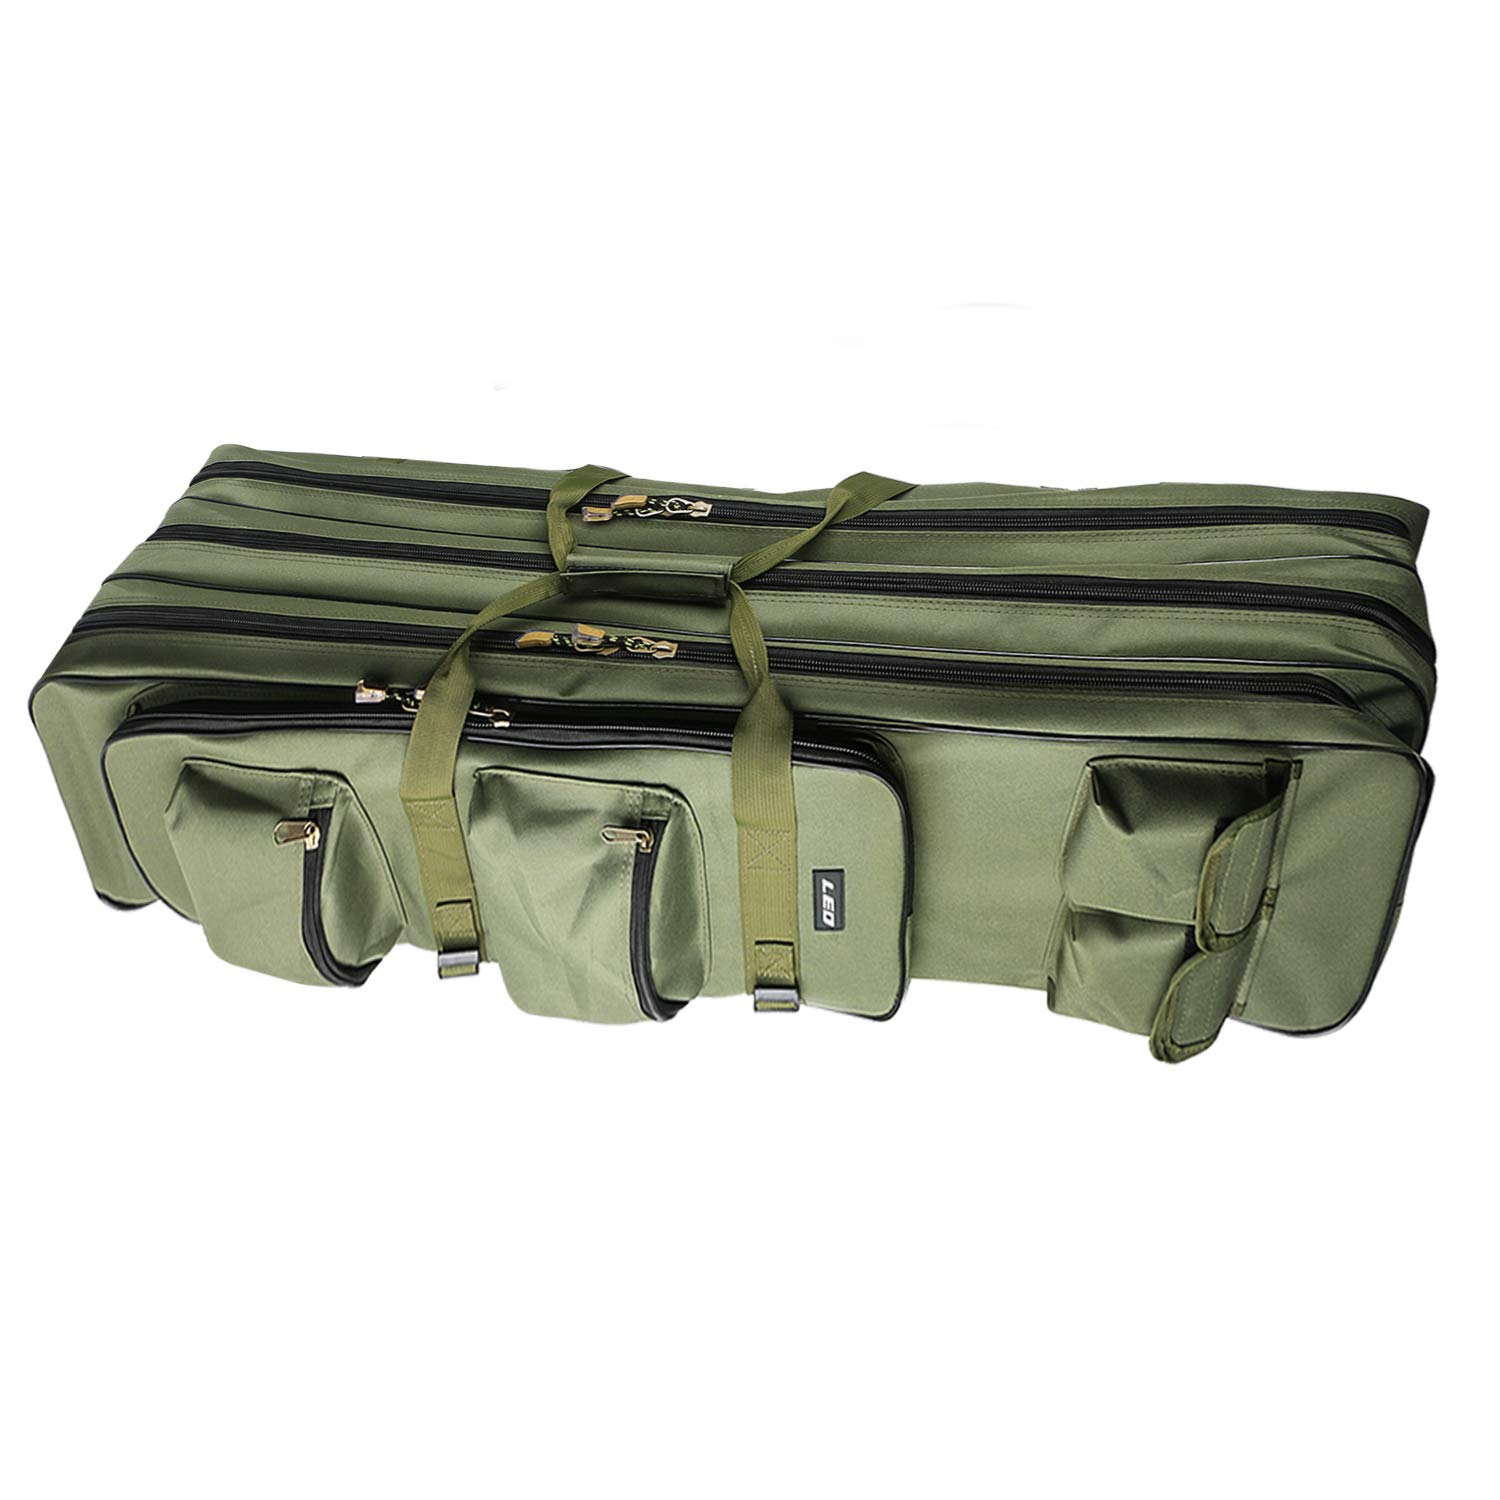 Fishing Rod Carrier Bag 31.5/39.4Inch Portable Waterproof Canvas Fishing Pole Reel Case Storage Bag Large Capacity Triple Layer Travel Carry Case Holder Fishing Gear Organizer (100cm/39.4inch)